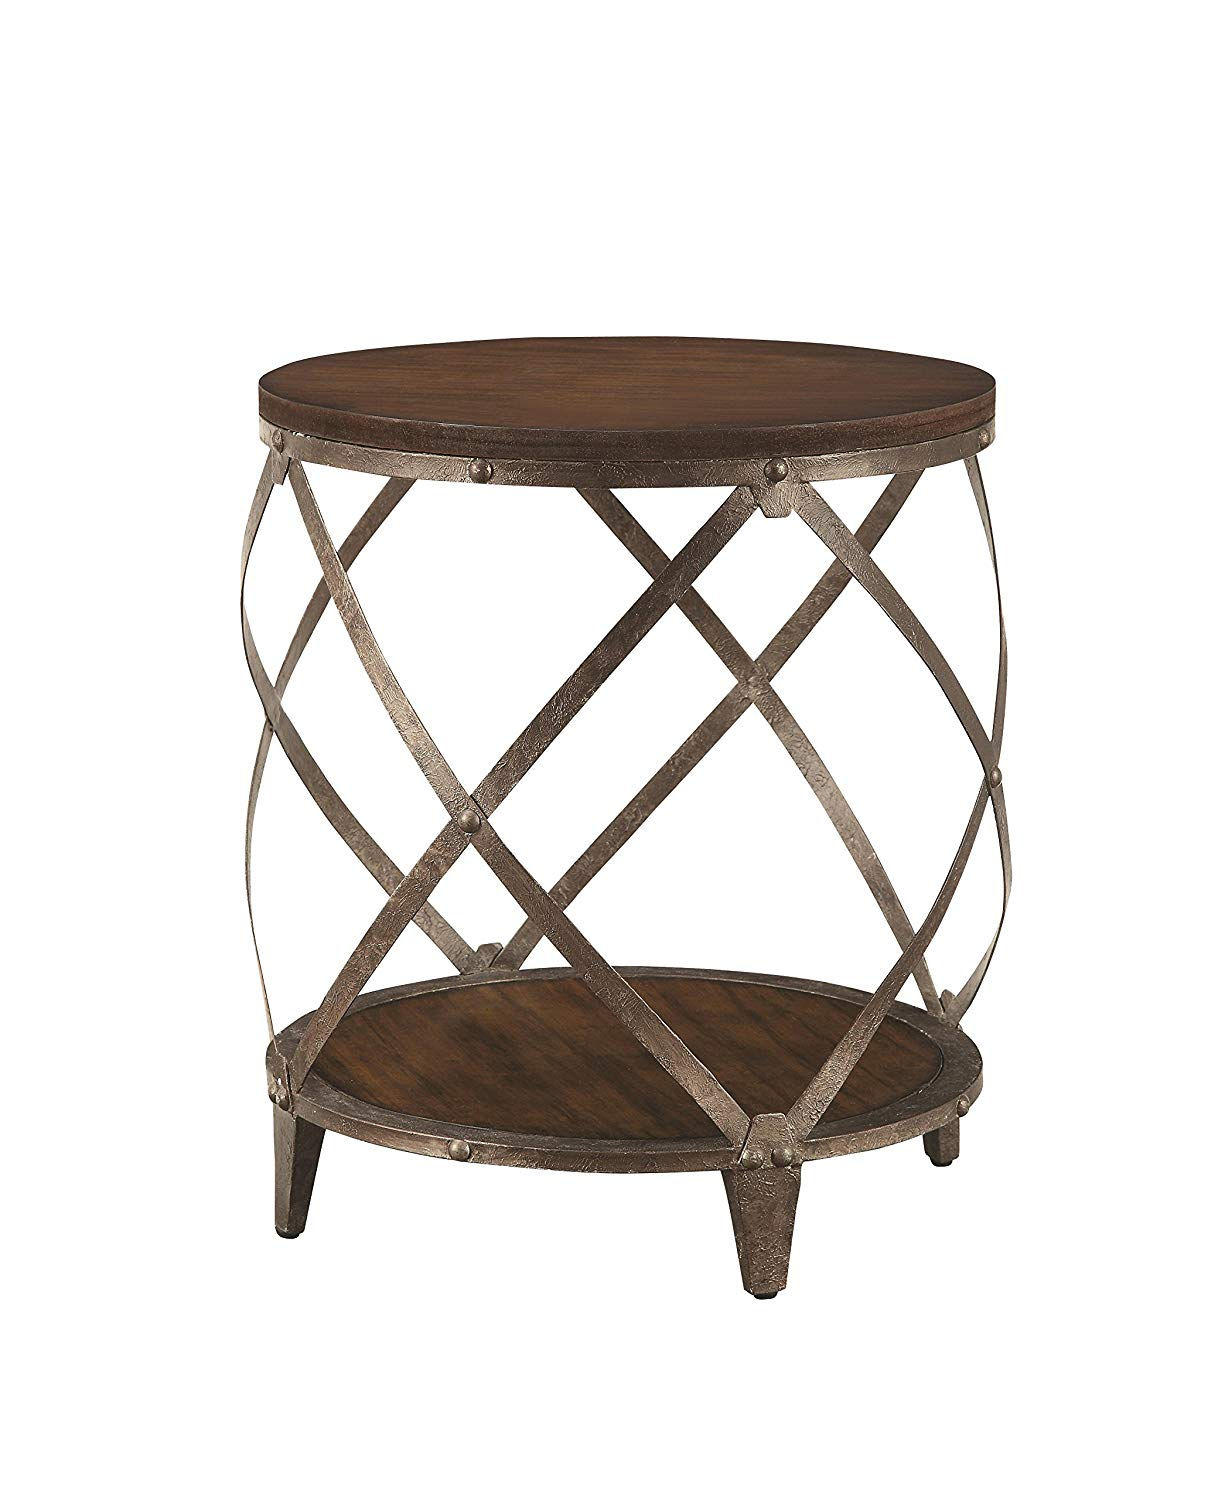 metal accent table with drum shape brown kitchen dining outdoor glass top end tables white garden furniture sets rattan pottery barn square coffee grey marble patio green tiffany